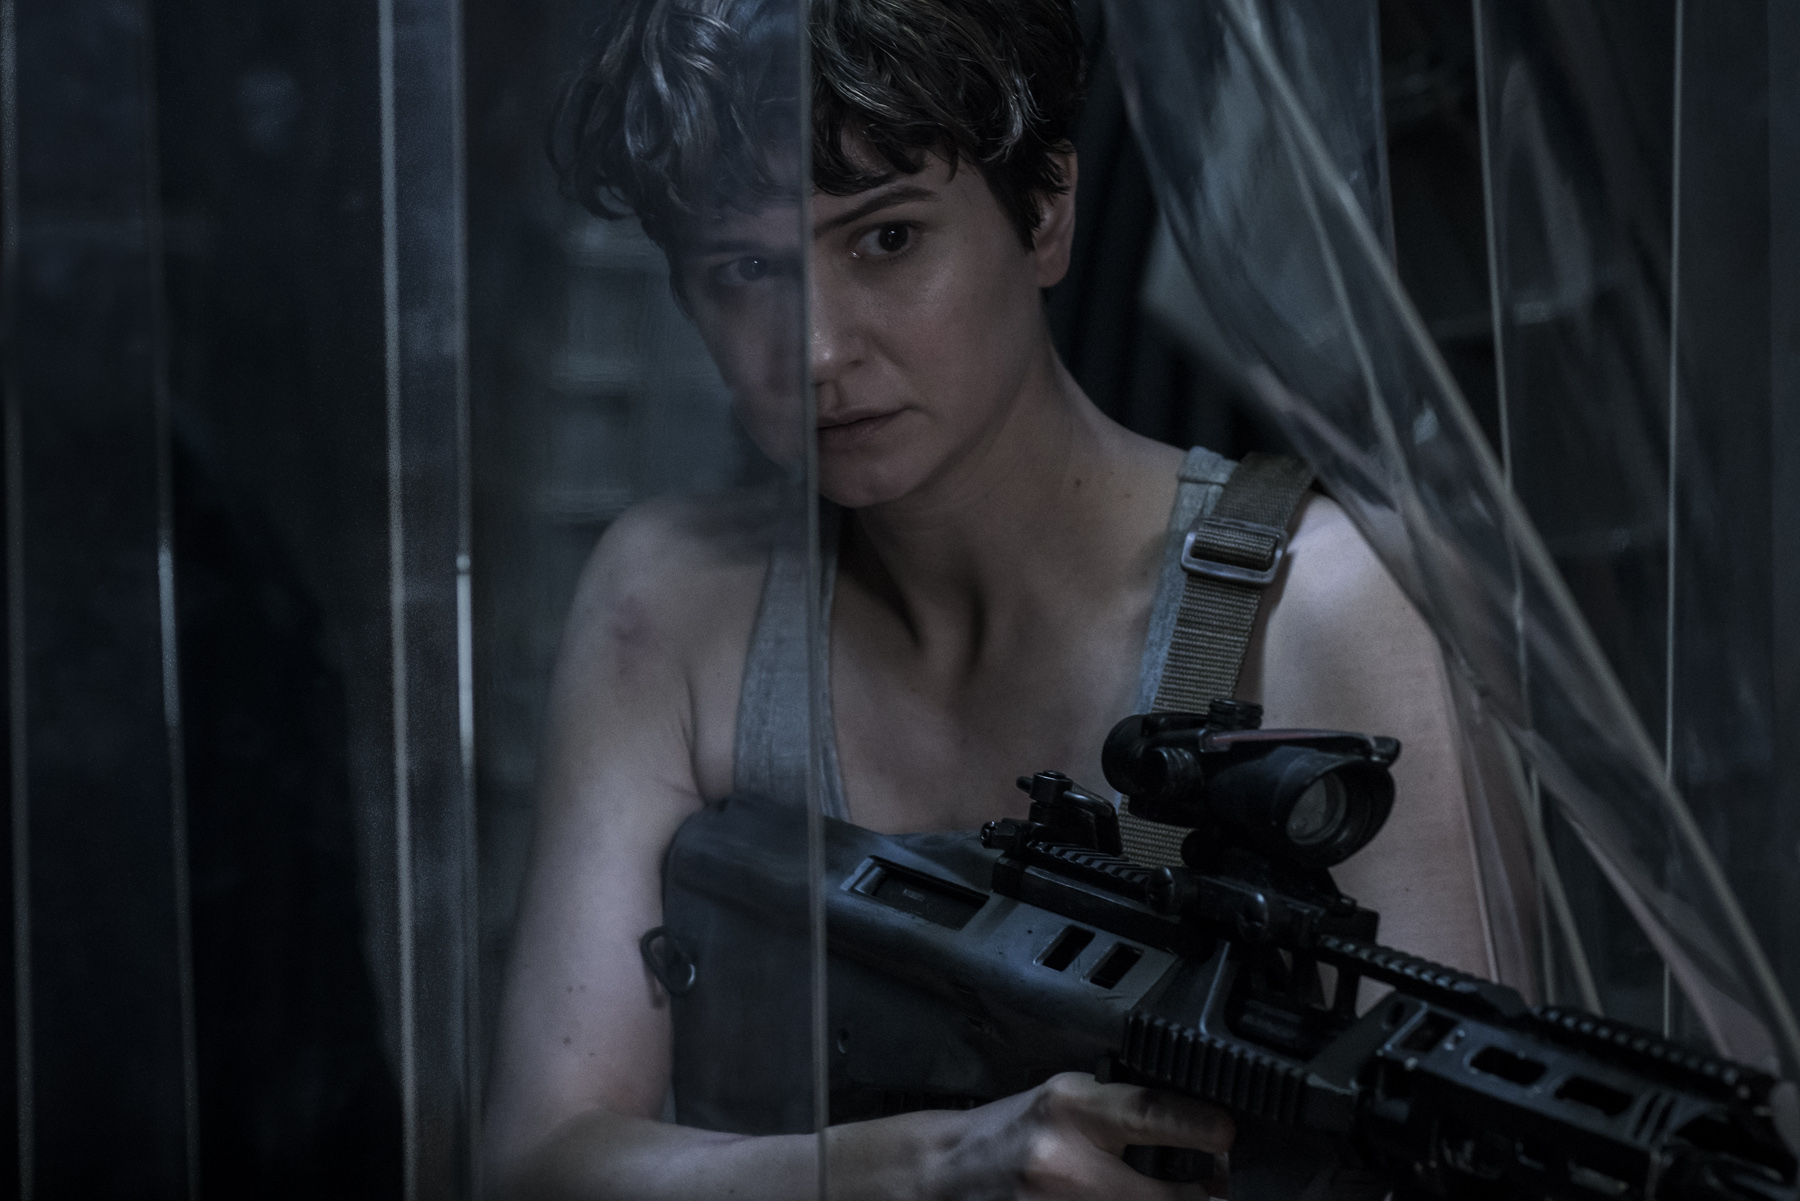 Katherine Waterson in Alien:Covenant